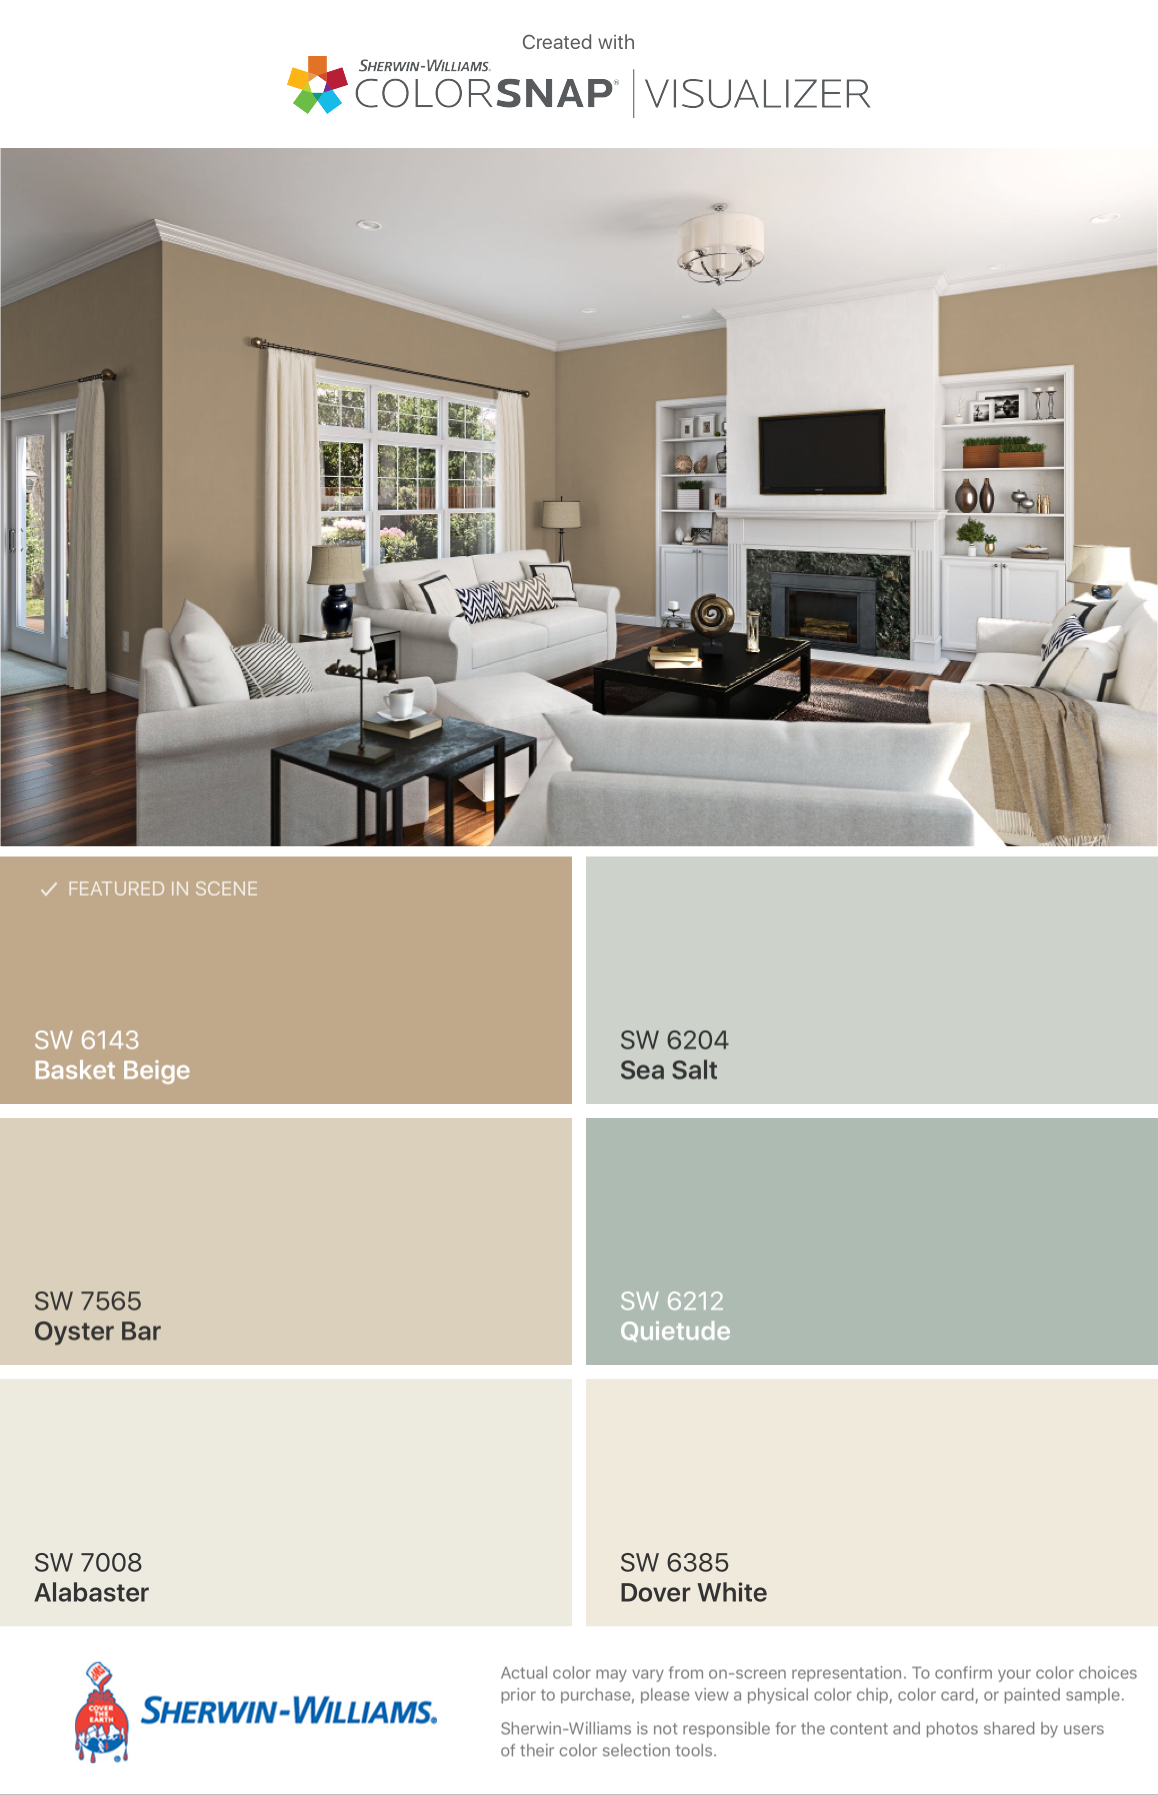 Pin by Julie Varrige on Paint colors | Pinterest | House, Decorating ...